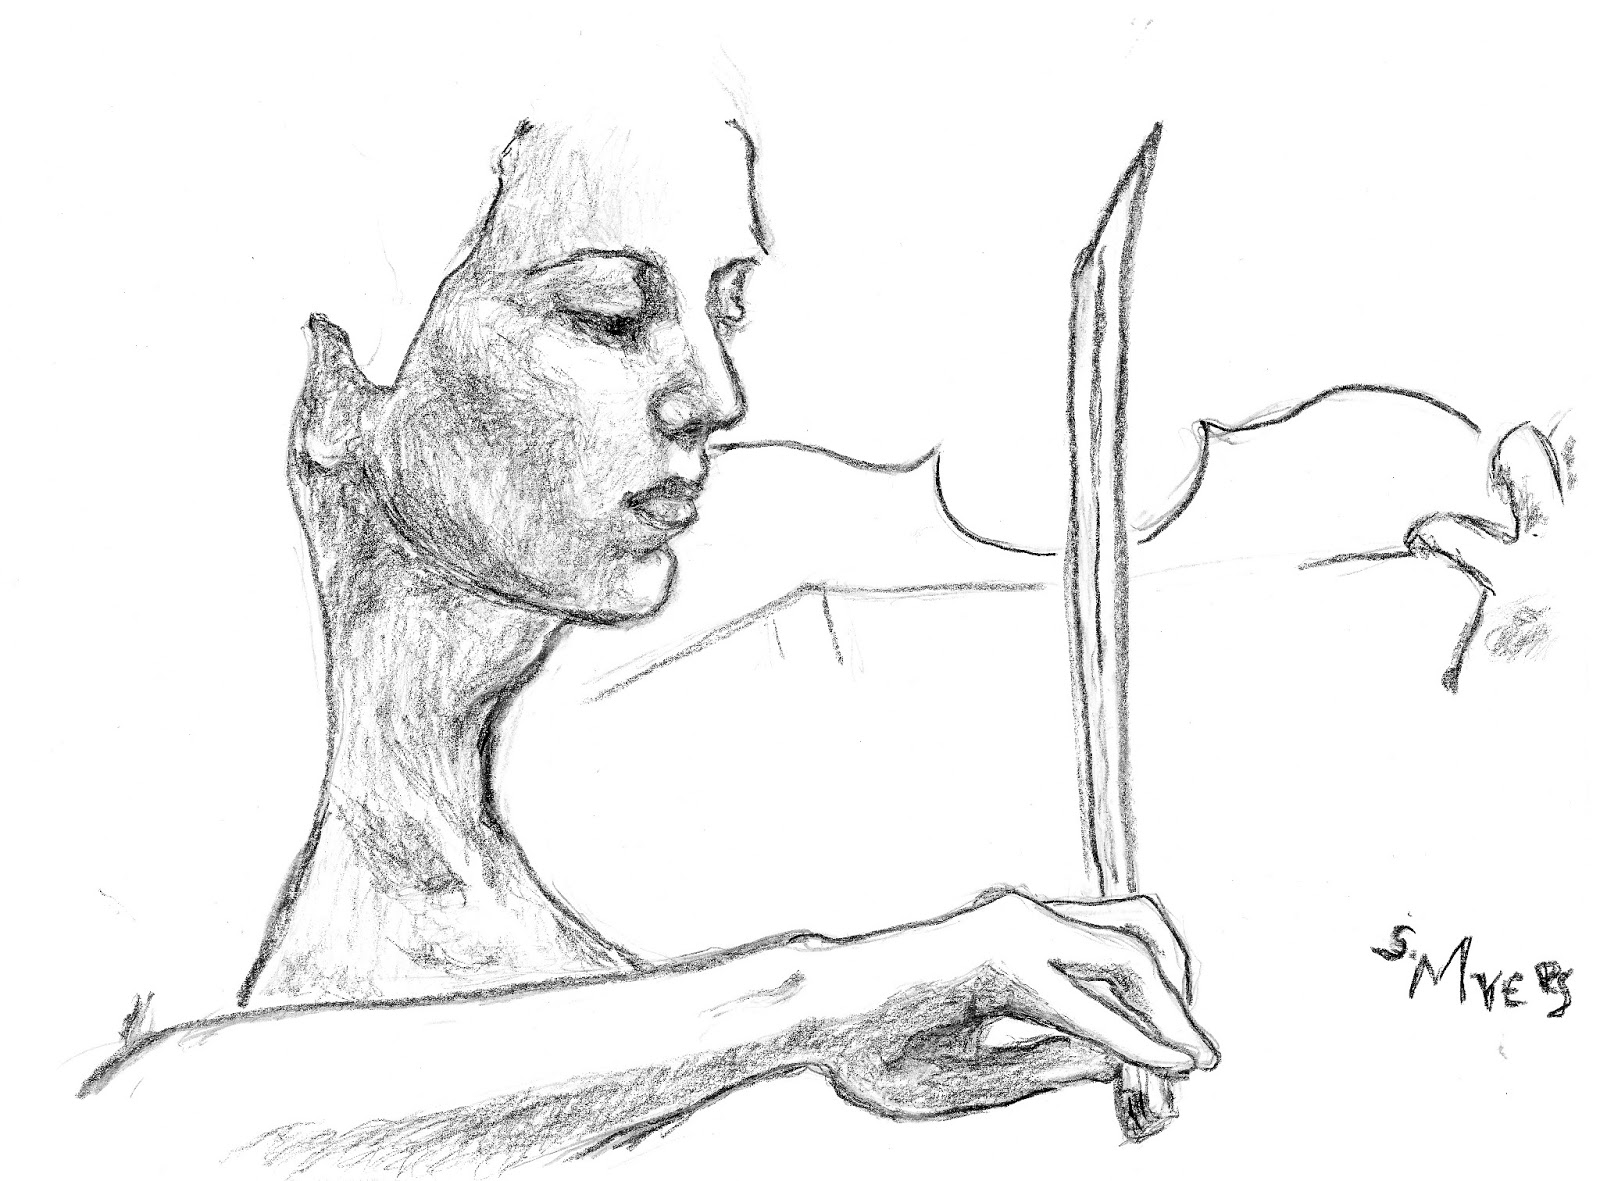 Drawn violinist The Oeuvre: Drawing Violinist S